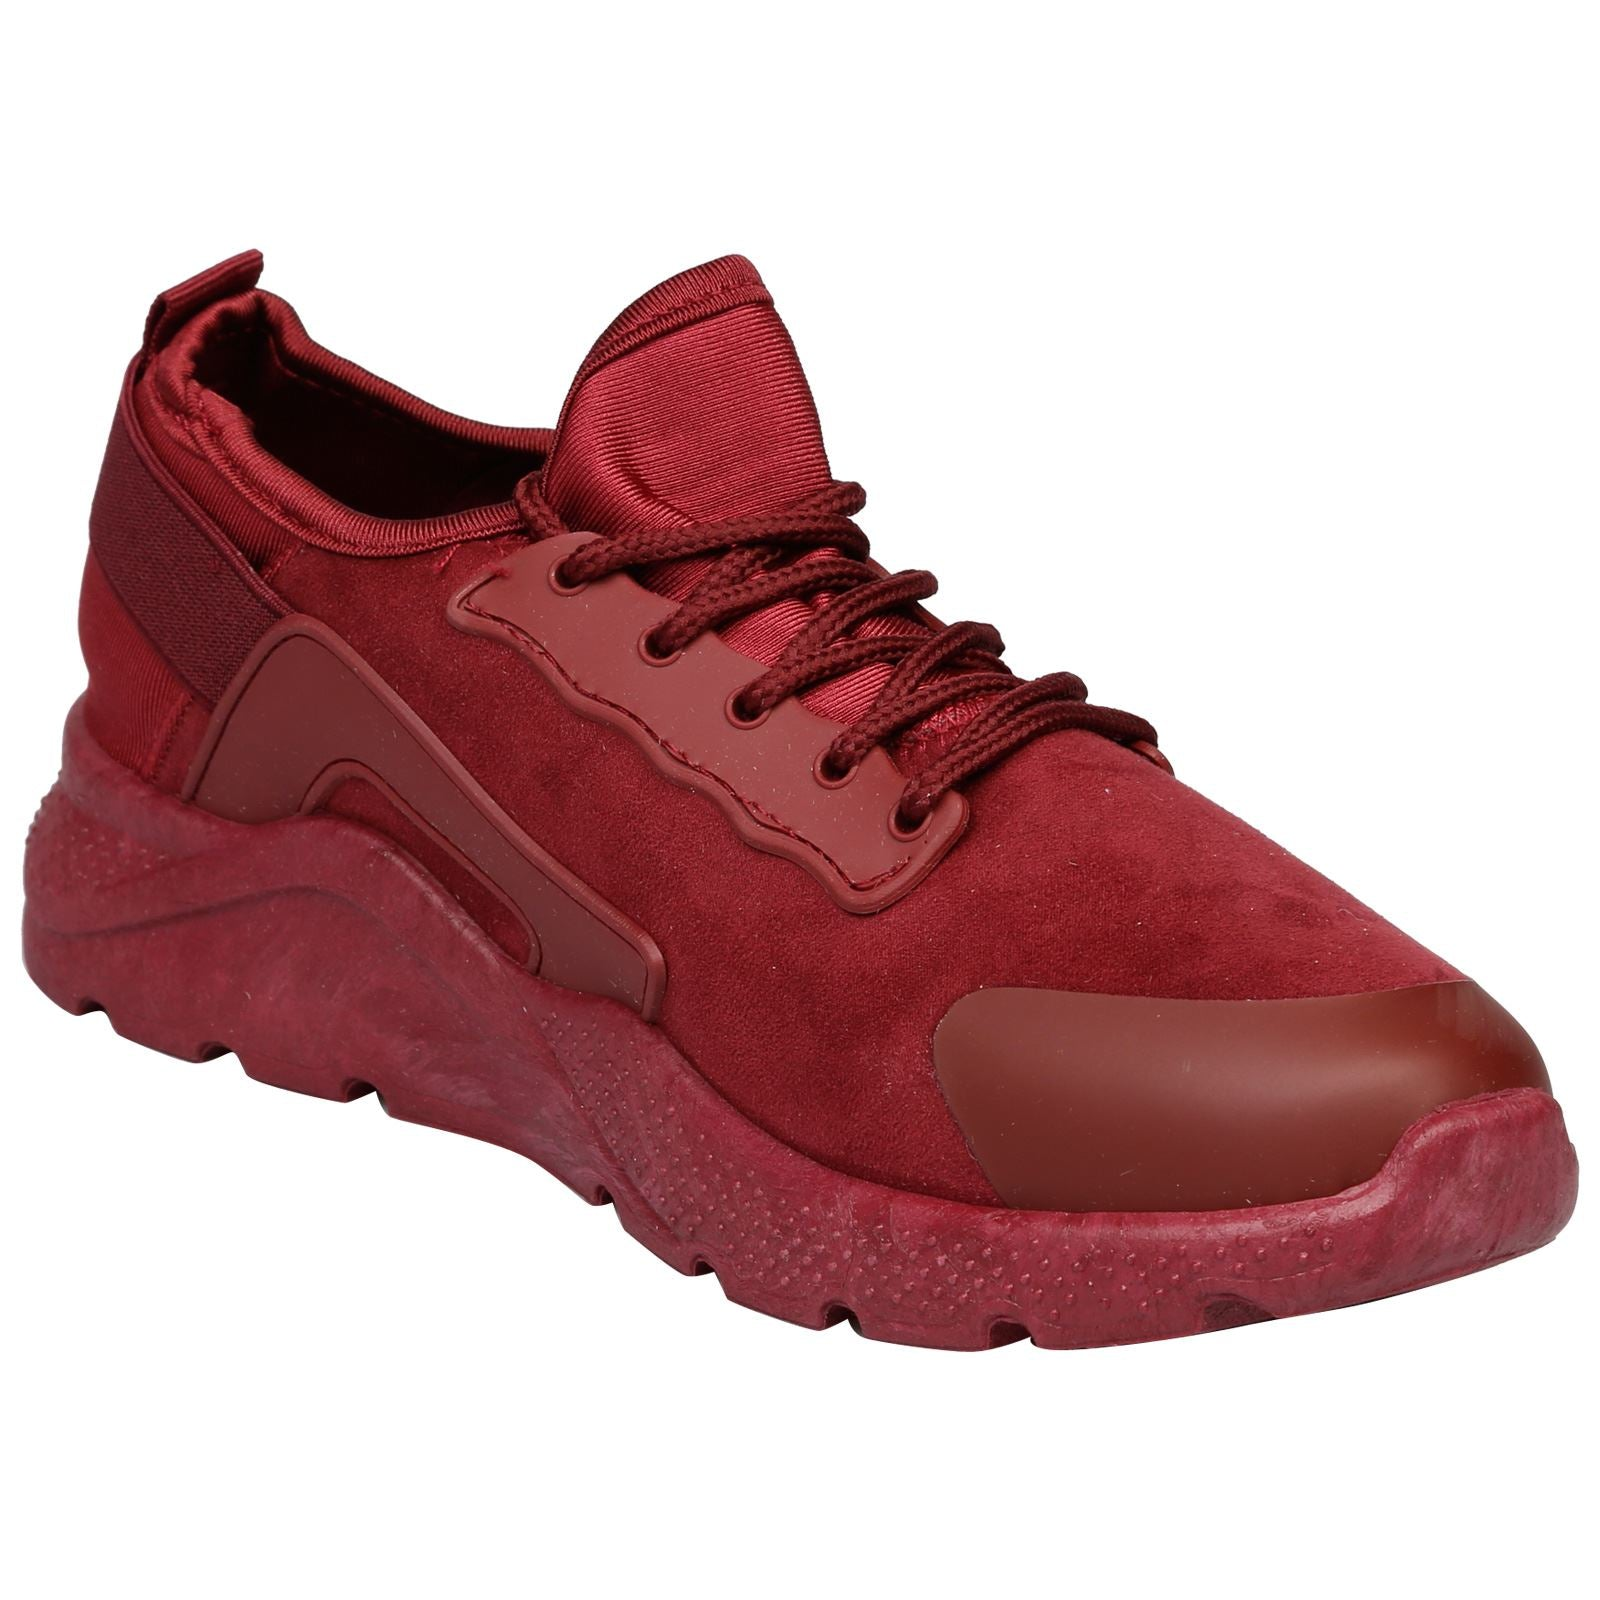 Danica Lace Up Trainers in Wine Red - Feet First Fashion